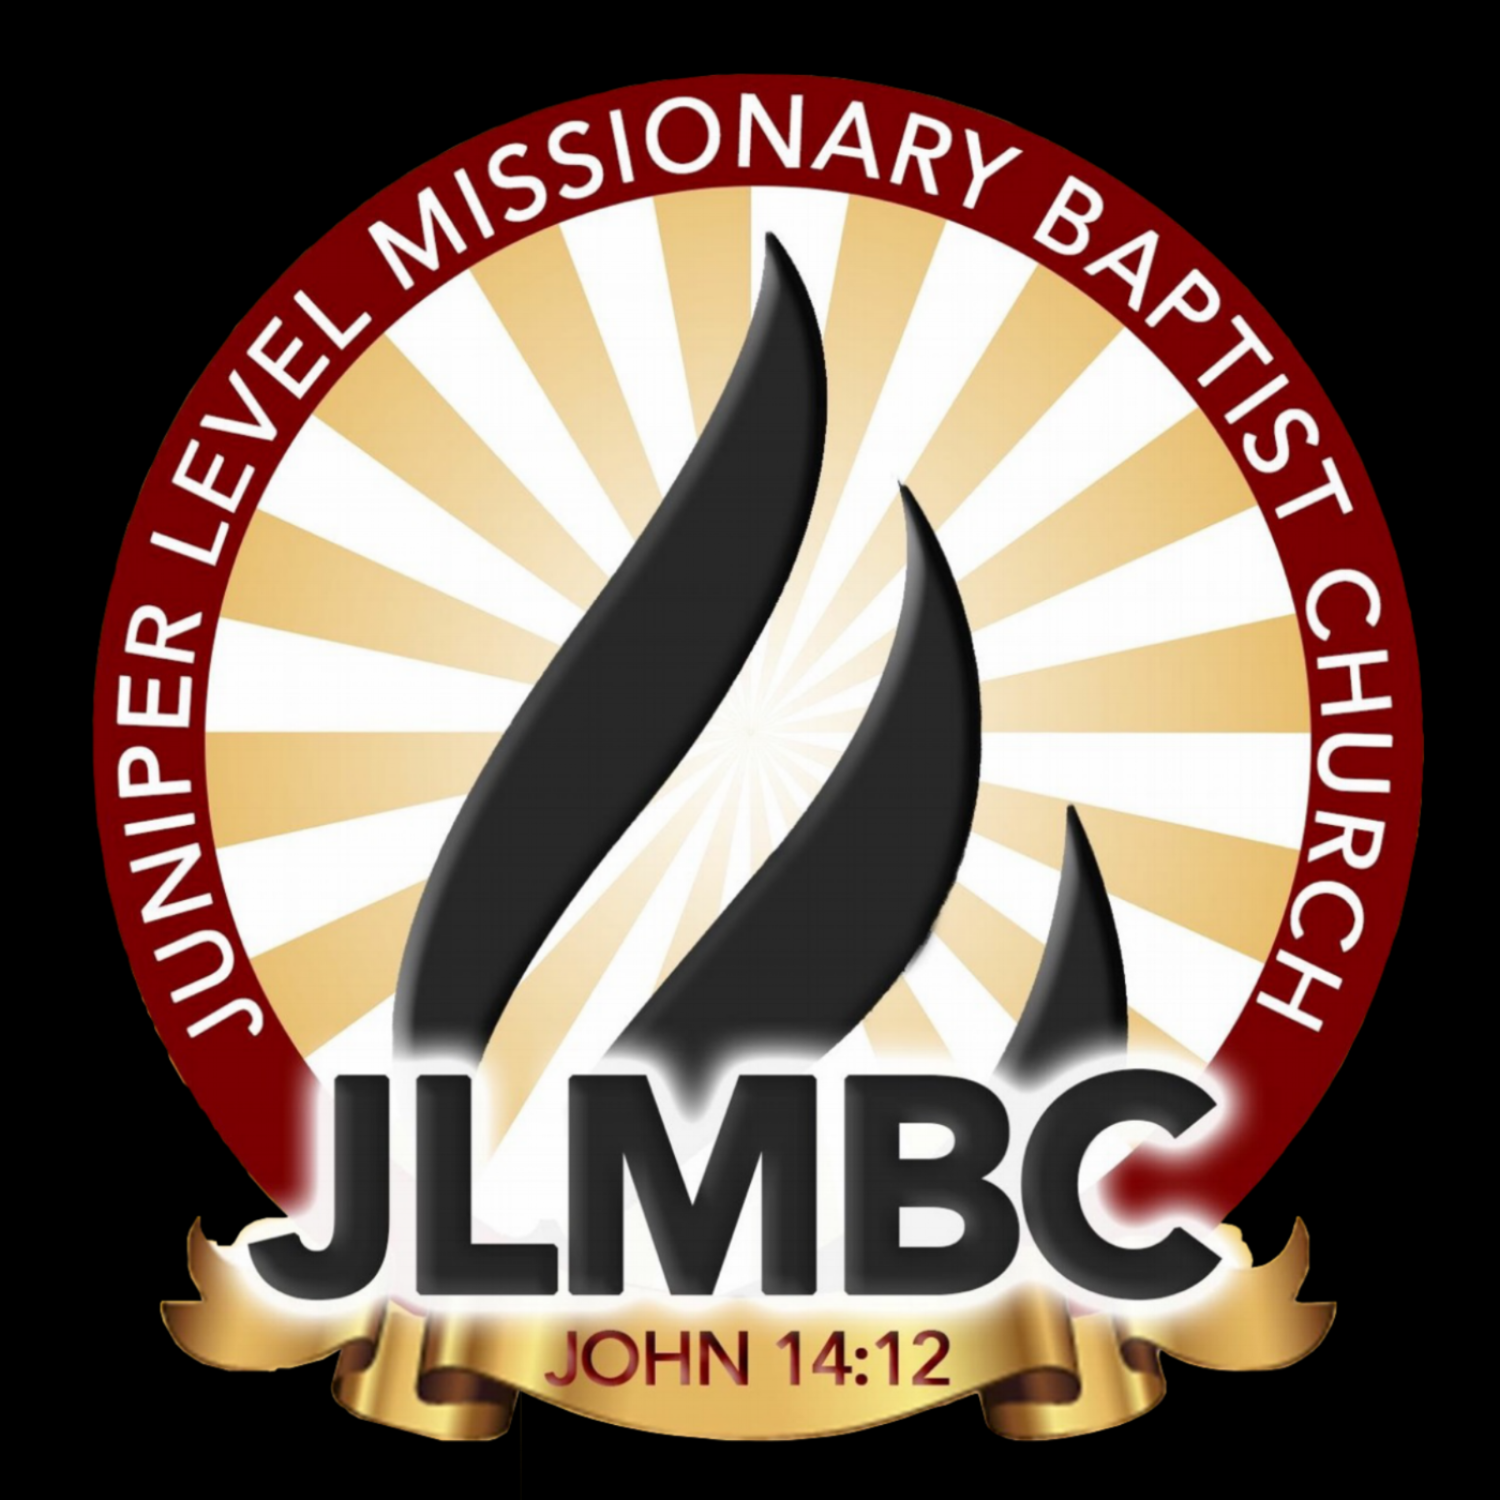 Juniper Level Missionary Baptist Church